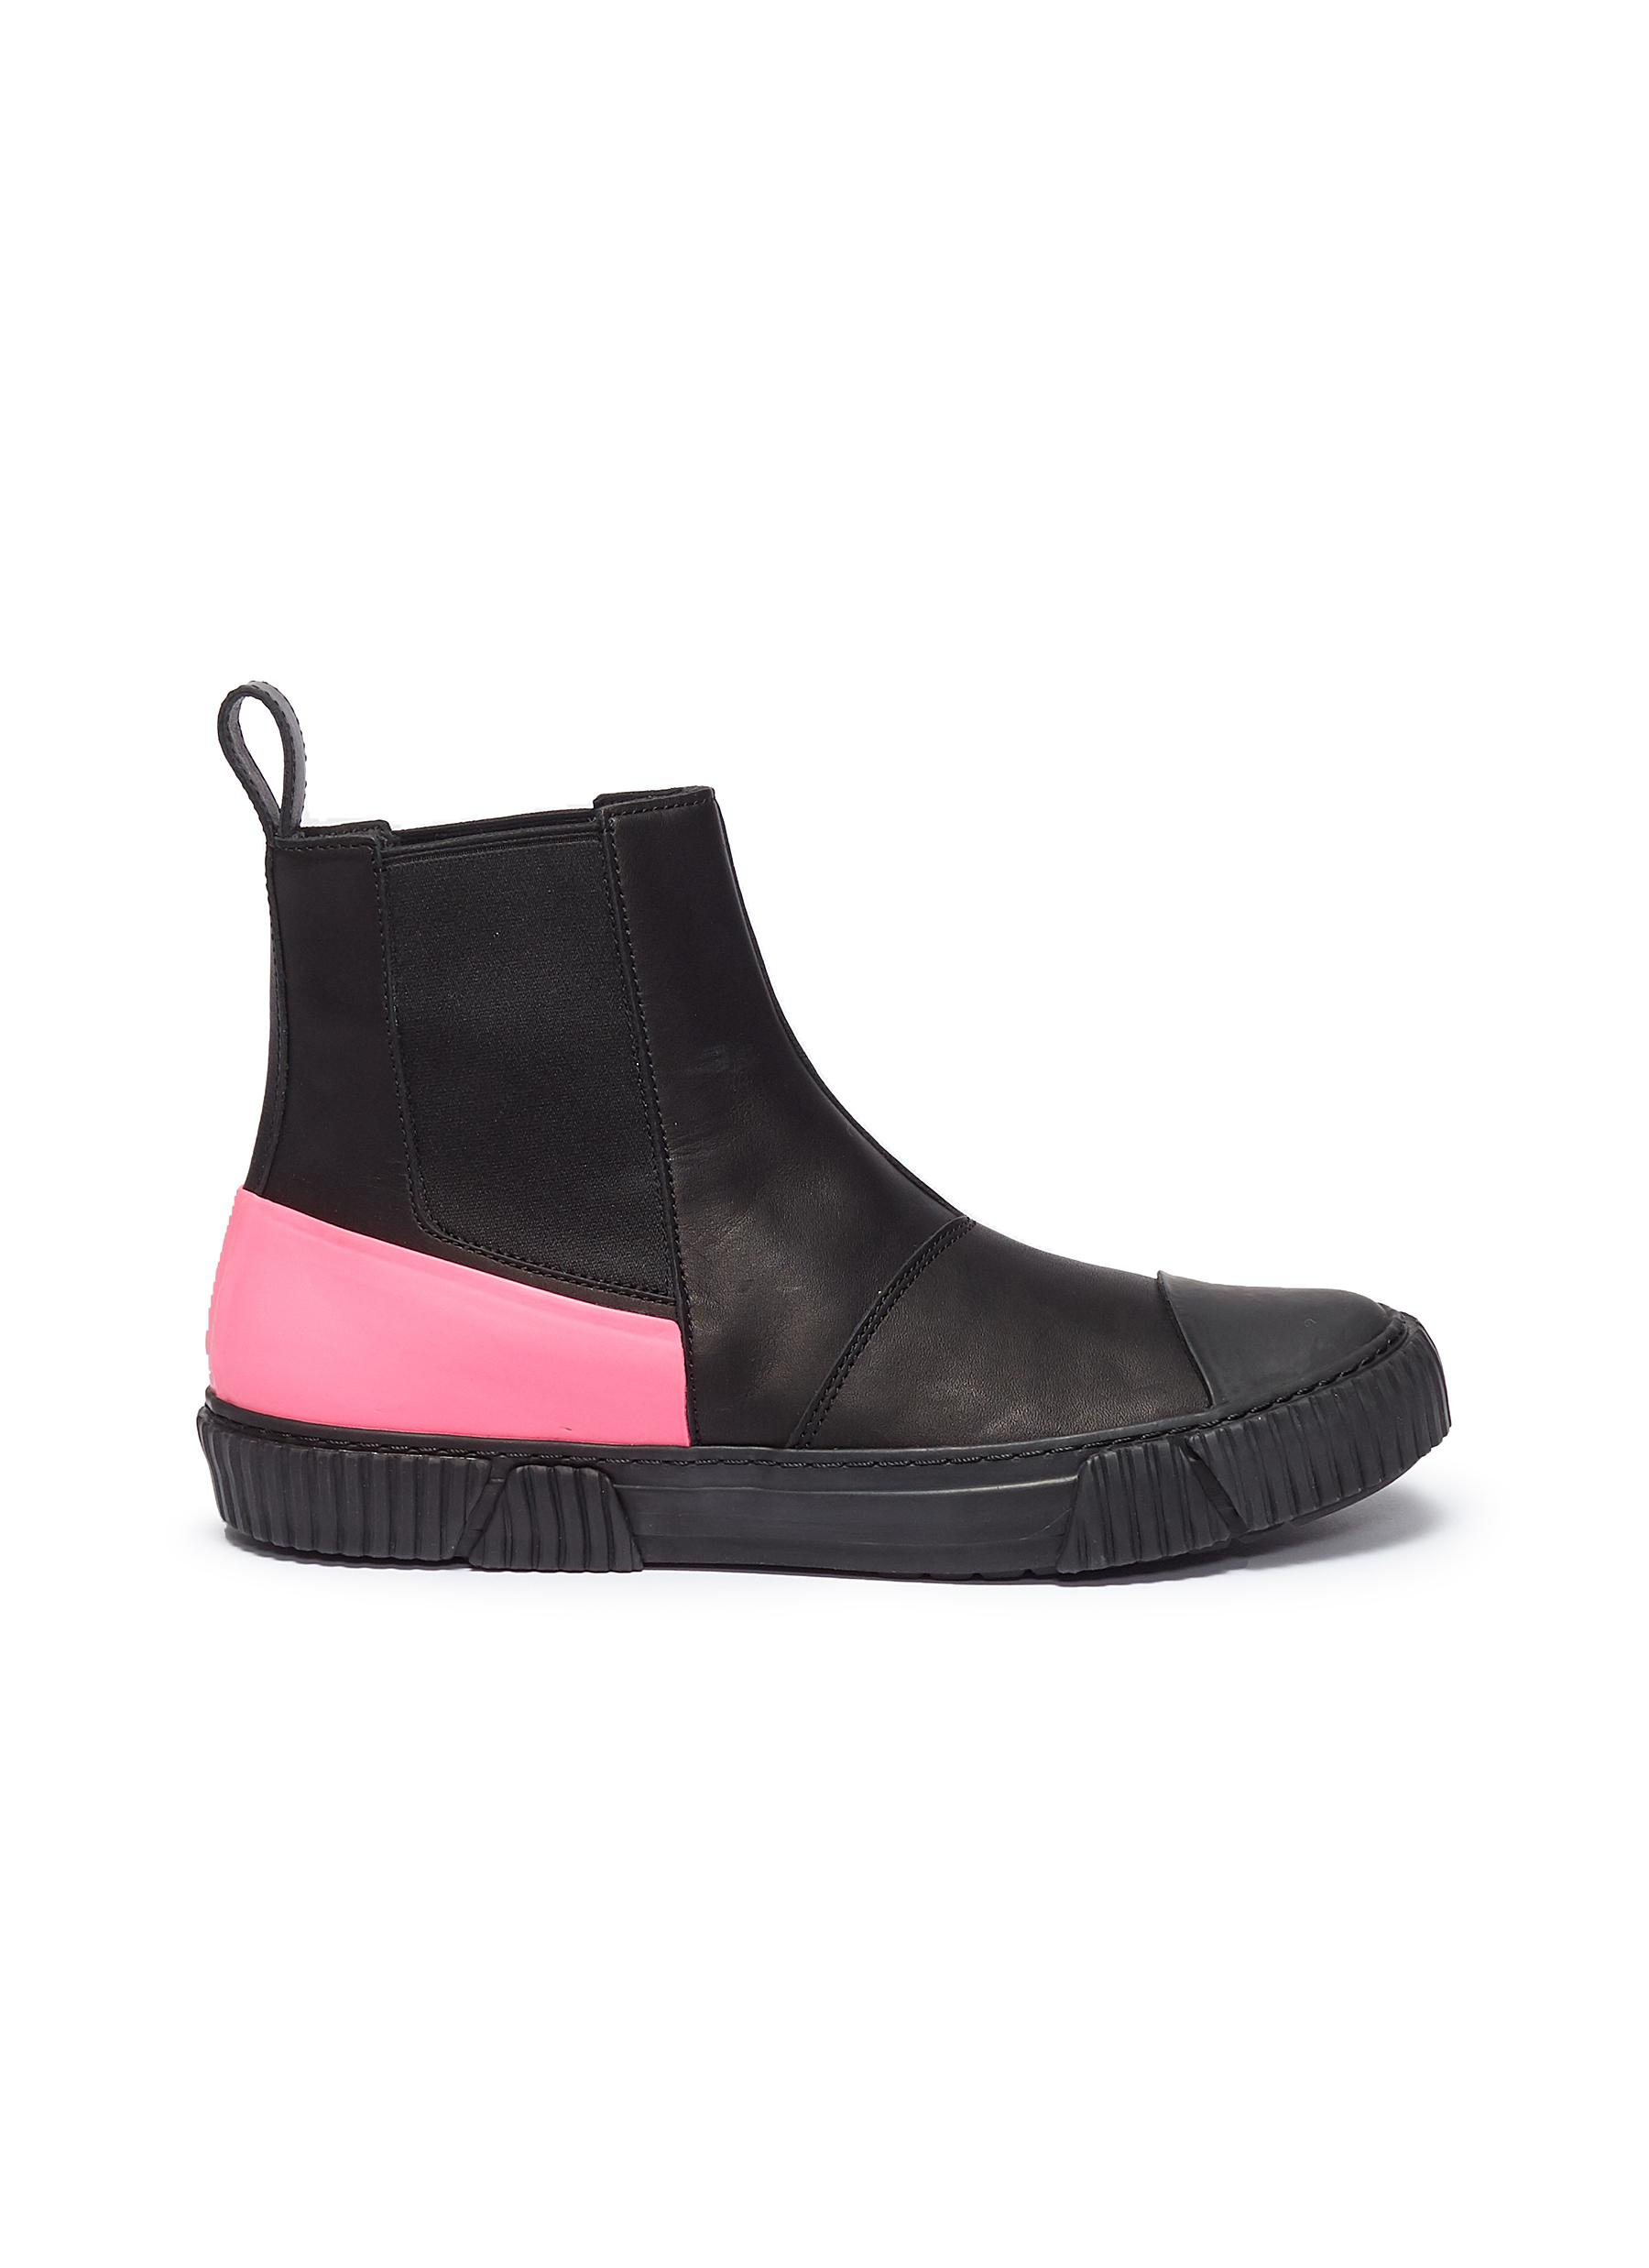 Photo of Colourblock rubber counter leather Chelsea sneaker boots by both womens shoes - buy both footwear online